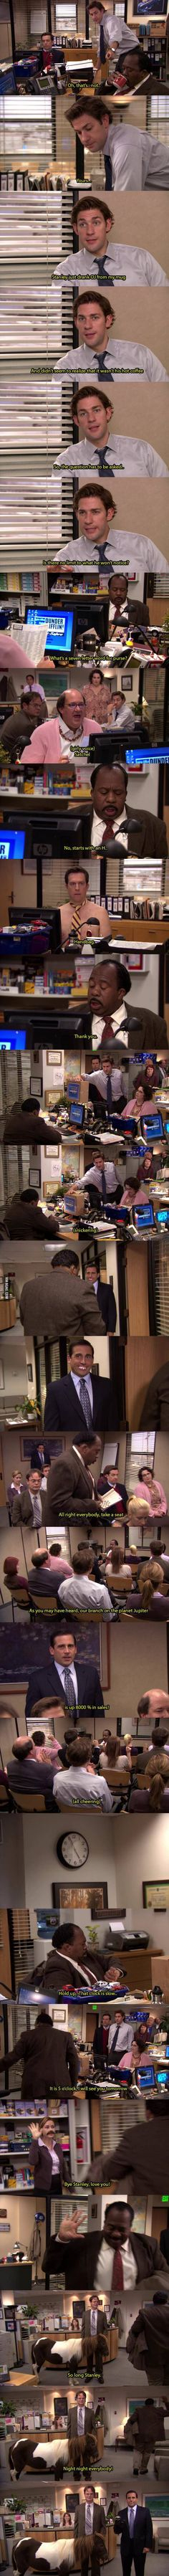 favorite opening to The Office. Love The Office, miss the show! Dundee, Geeks, Office Memes, Funny Office, Office Quotes, Funny Work, Work Quotes, The Office Humor, Dunder Mifflin